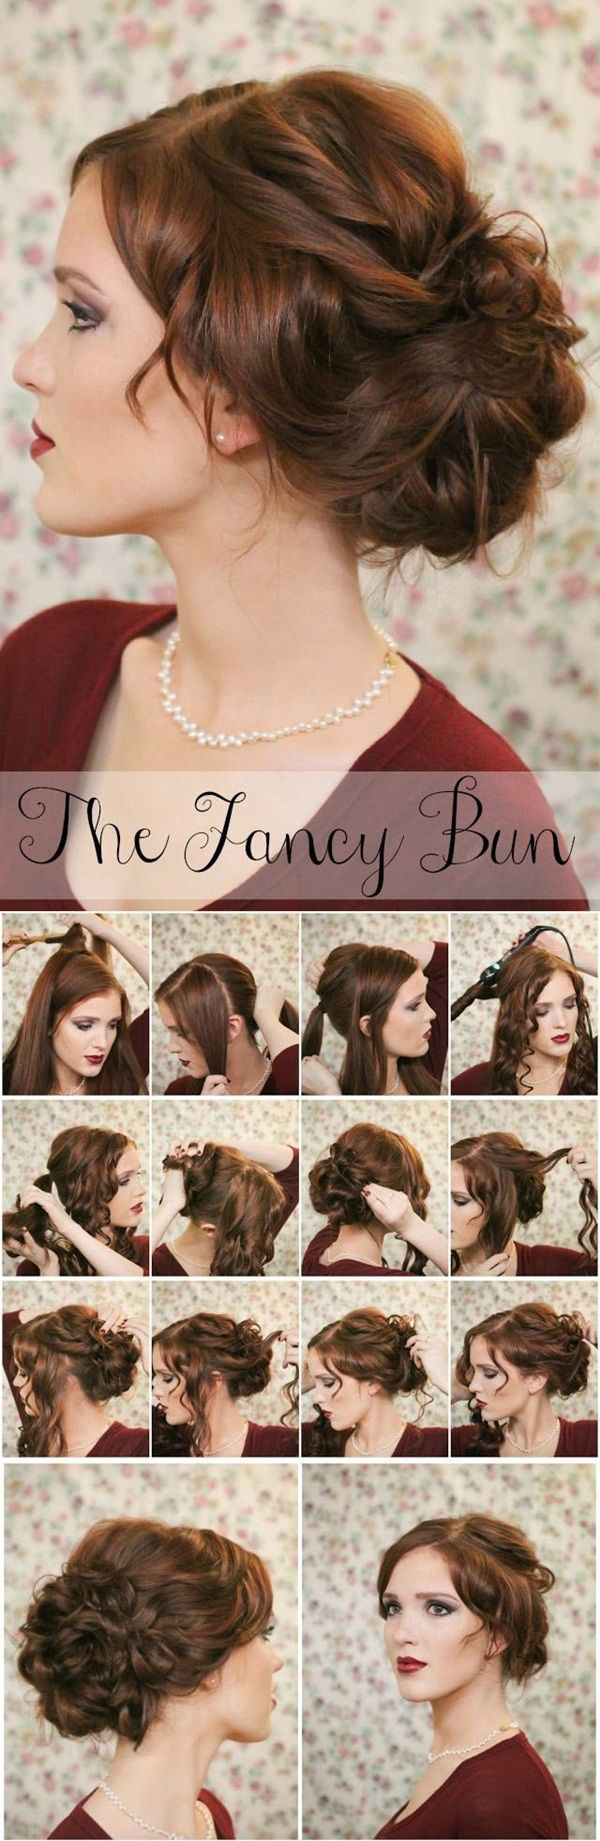 So Sexy and Easy Bun Hairstyle Tutorials For you (3): Hairstyles, Wedding Hair, Fancy Bun, Hair Styles, Updo